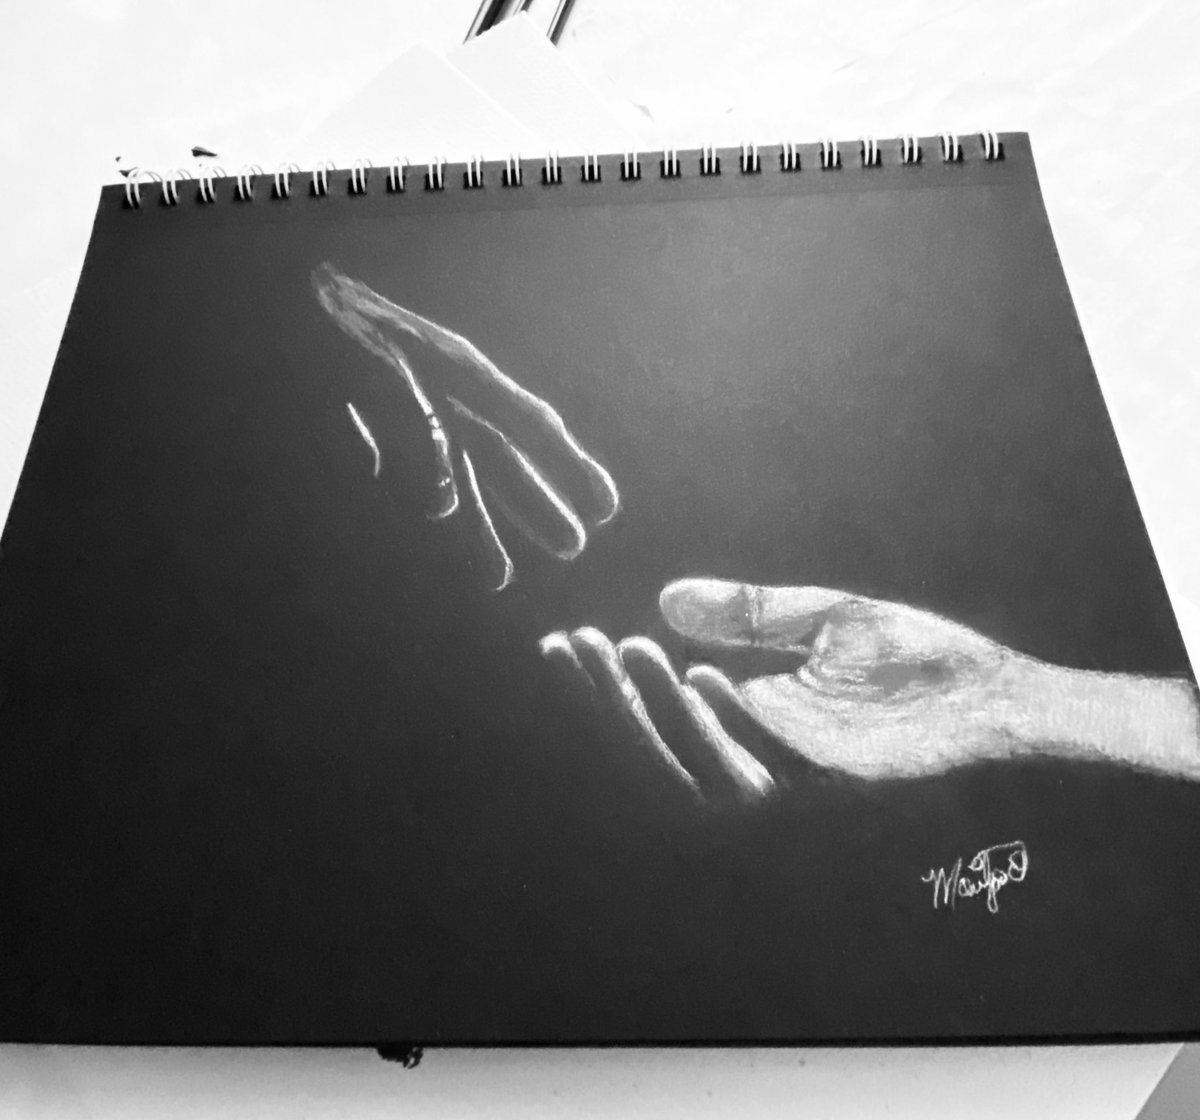 Late night doodles. White charcoal on black paper. #whitecharcoal #charcoaldrawing #sketches #drawing #sillouette #pencilsketch #pencilart #shadowpic.twitter.com/NrzQW7CQOY